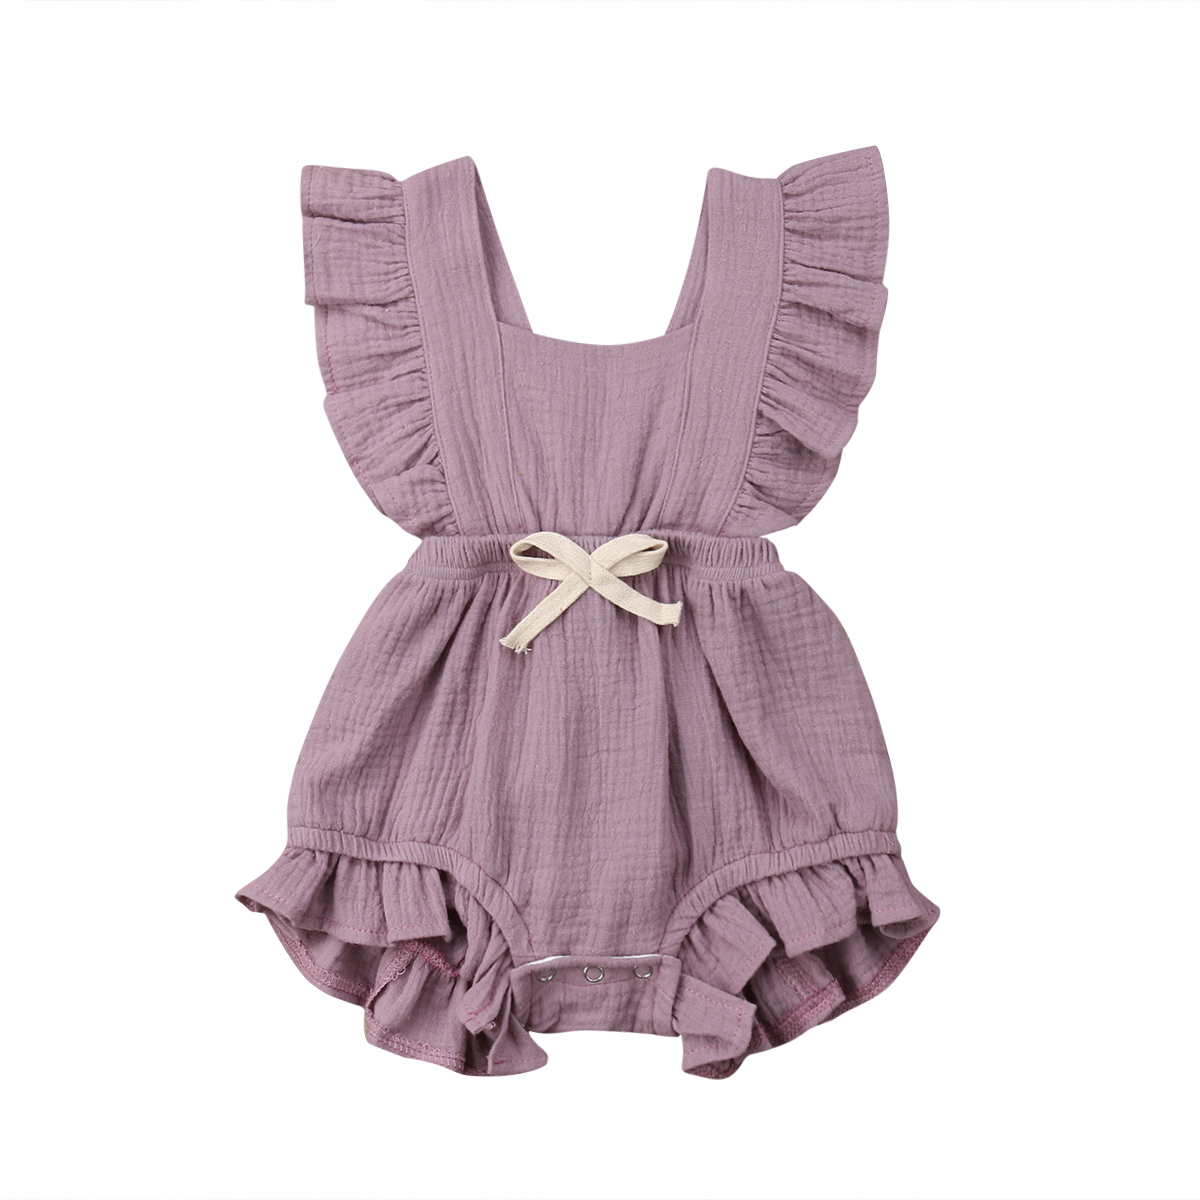 ec152d14c 6 Color Cute Baby Girl Ruffle Solid Color Romper Jumpsuit Outfits Sunsuit  for Newborn Infant Children